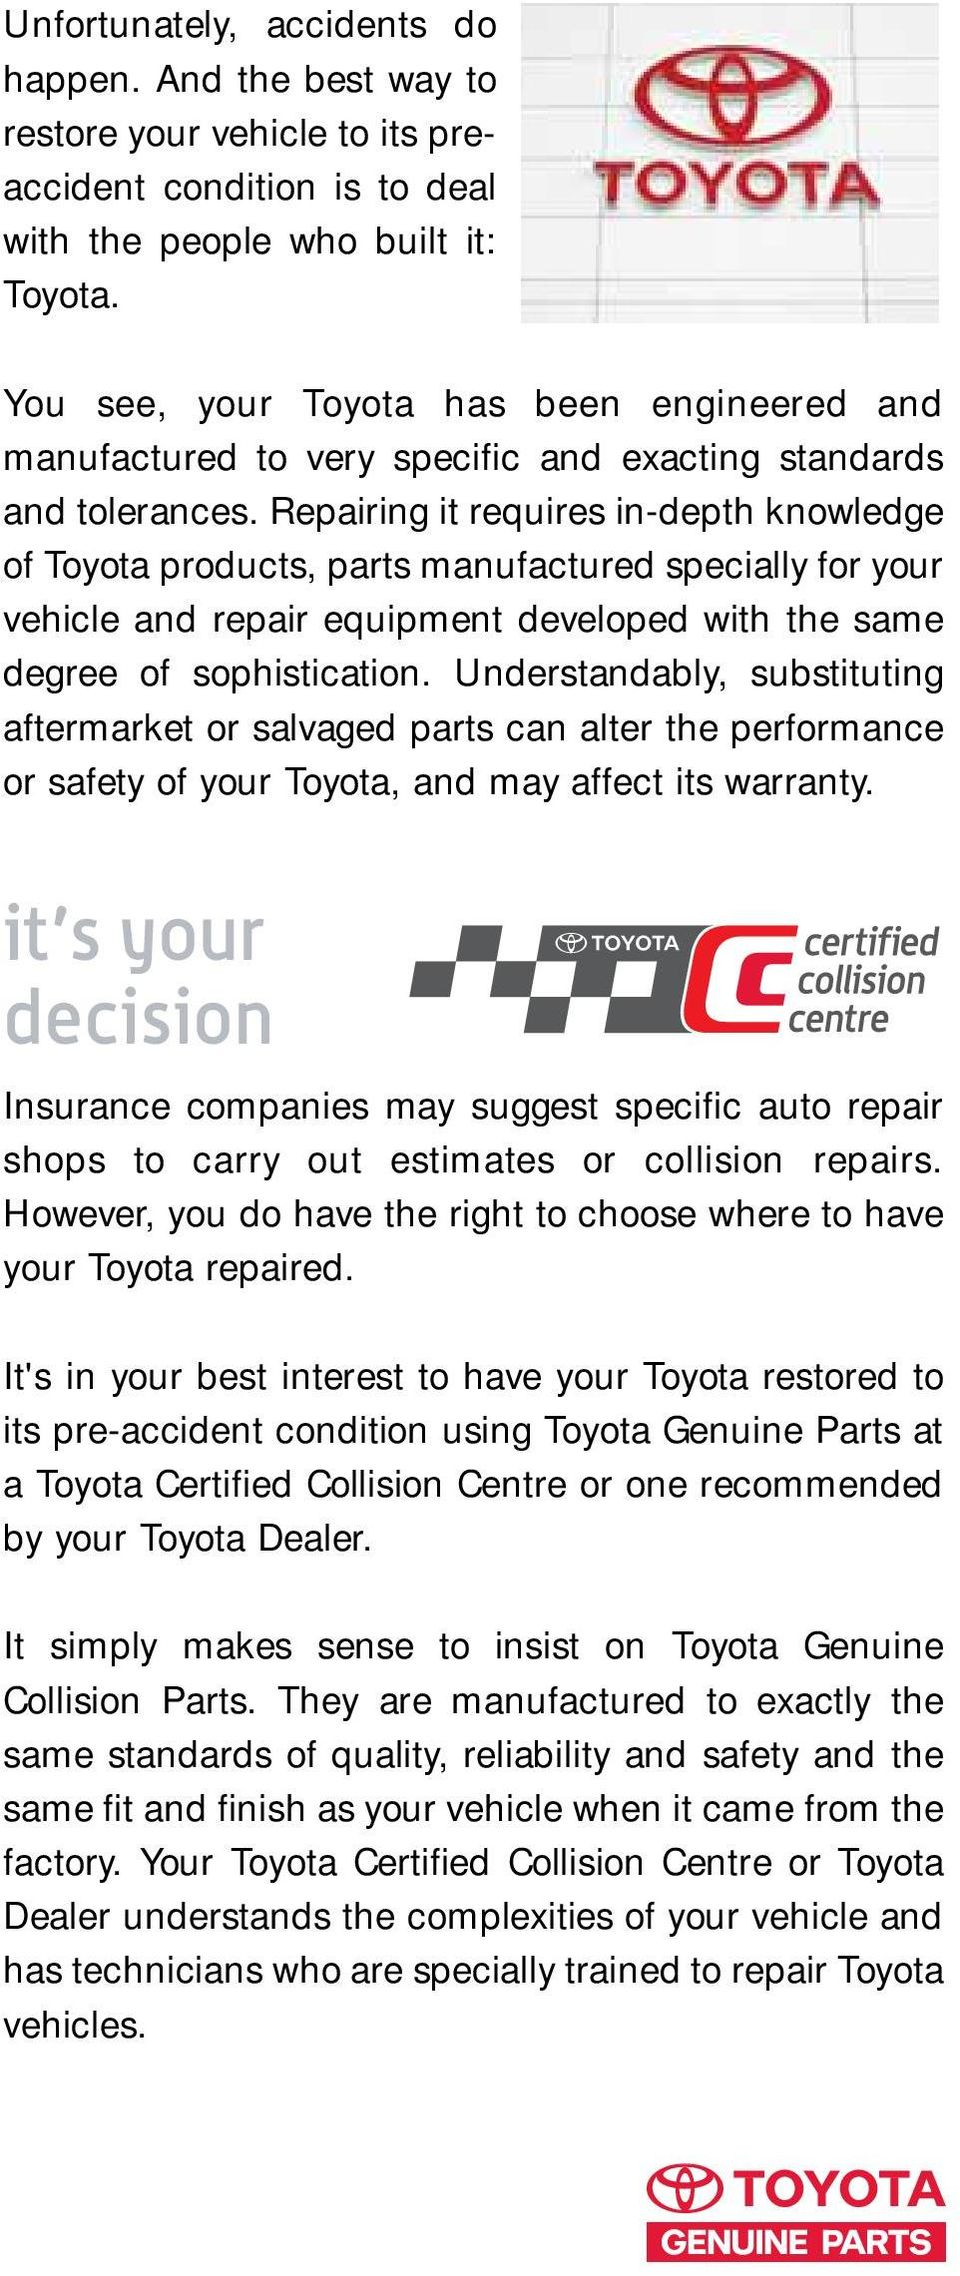 Repairing it requires in-depth knowledge of Toyota products, parts manufactured specially for your vehicle and repair equipment developed with the same degree of sophistication.